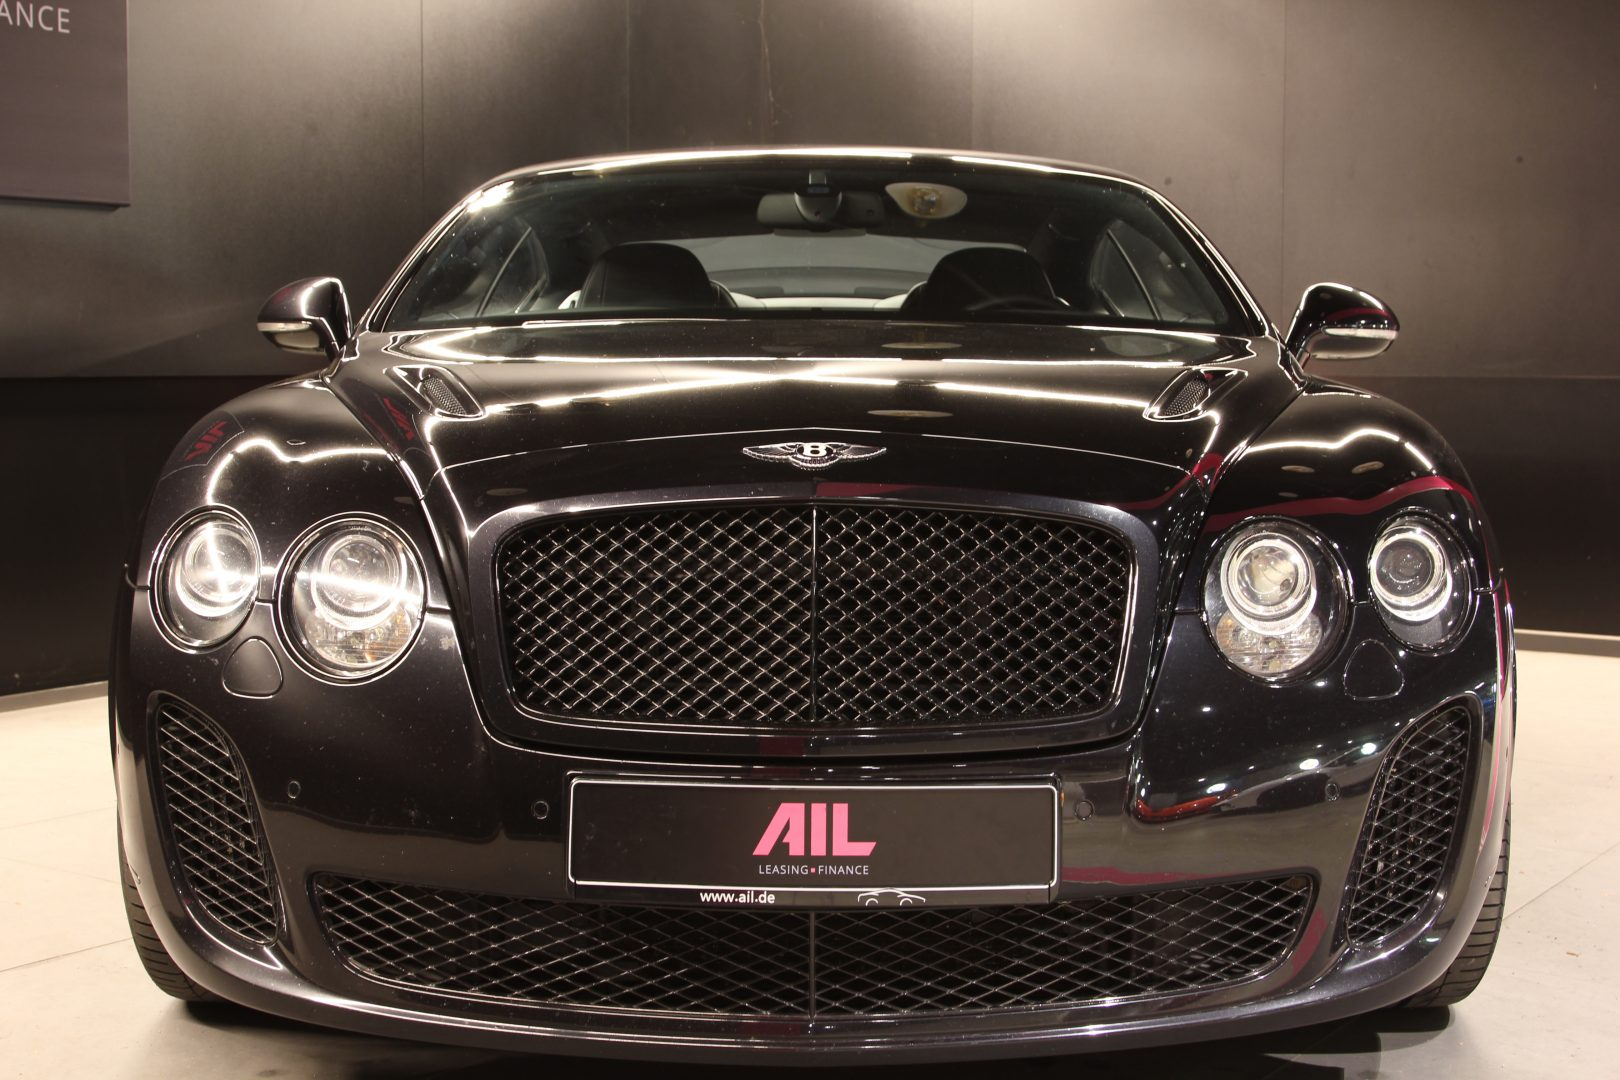 AIL Bentley Continental Supersports 4